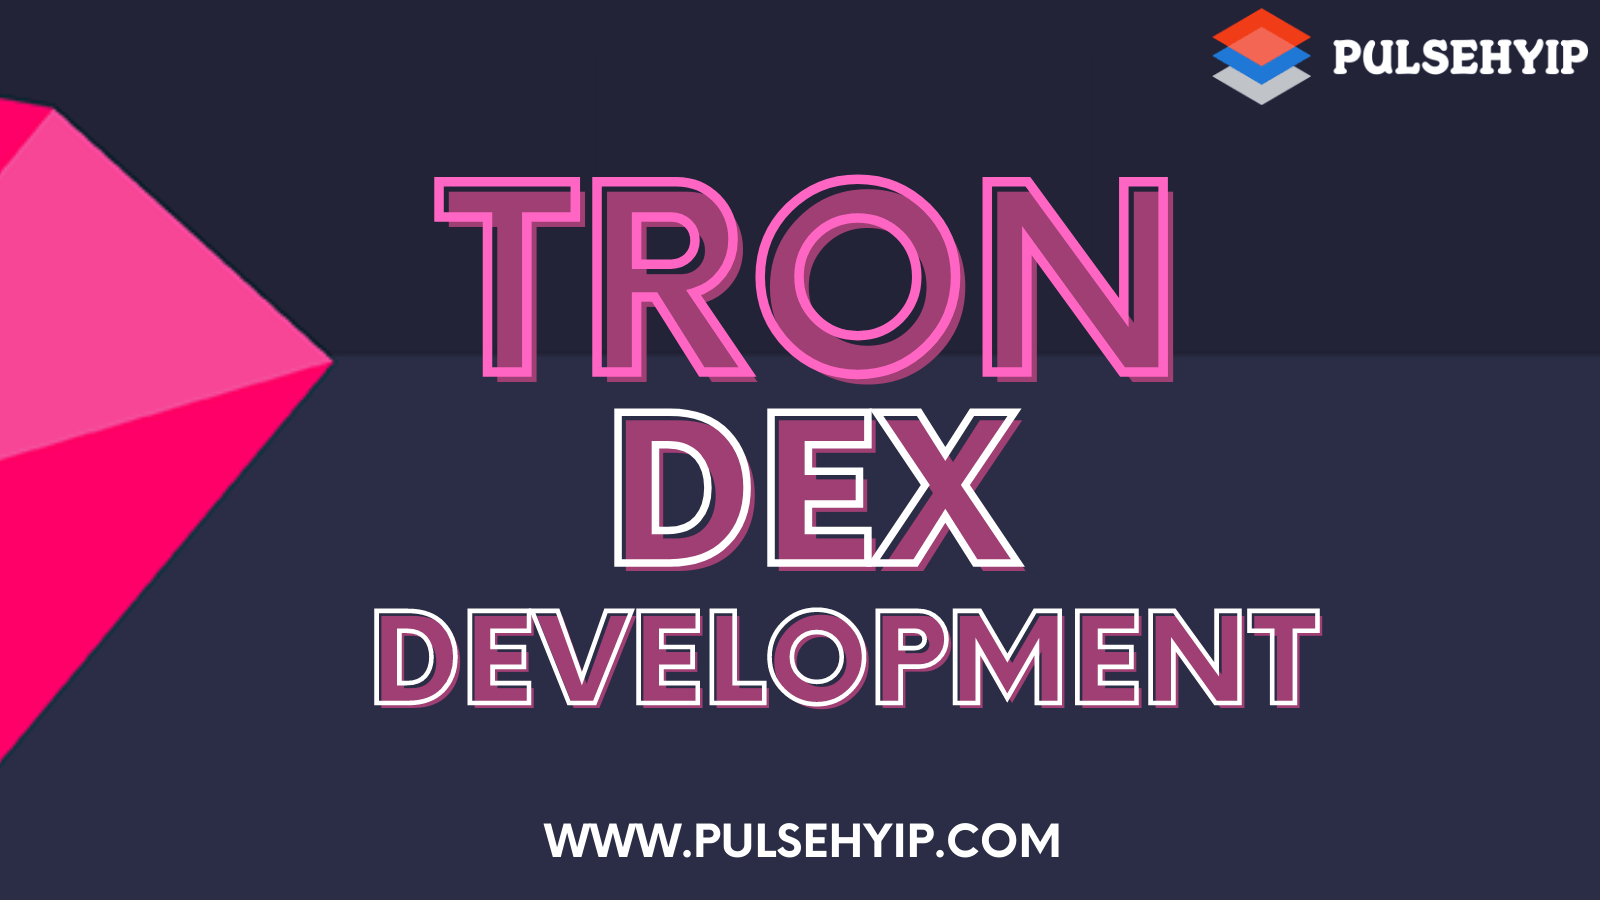 TRON DEX Development Company